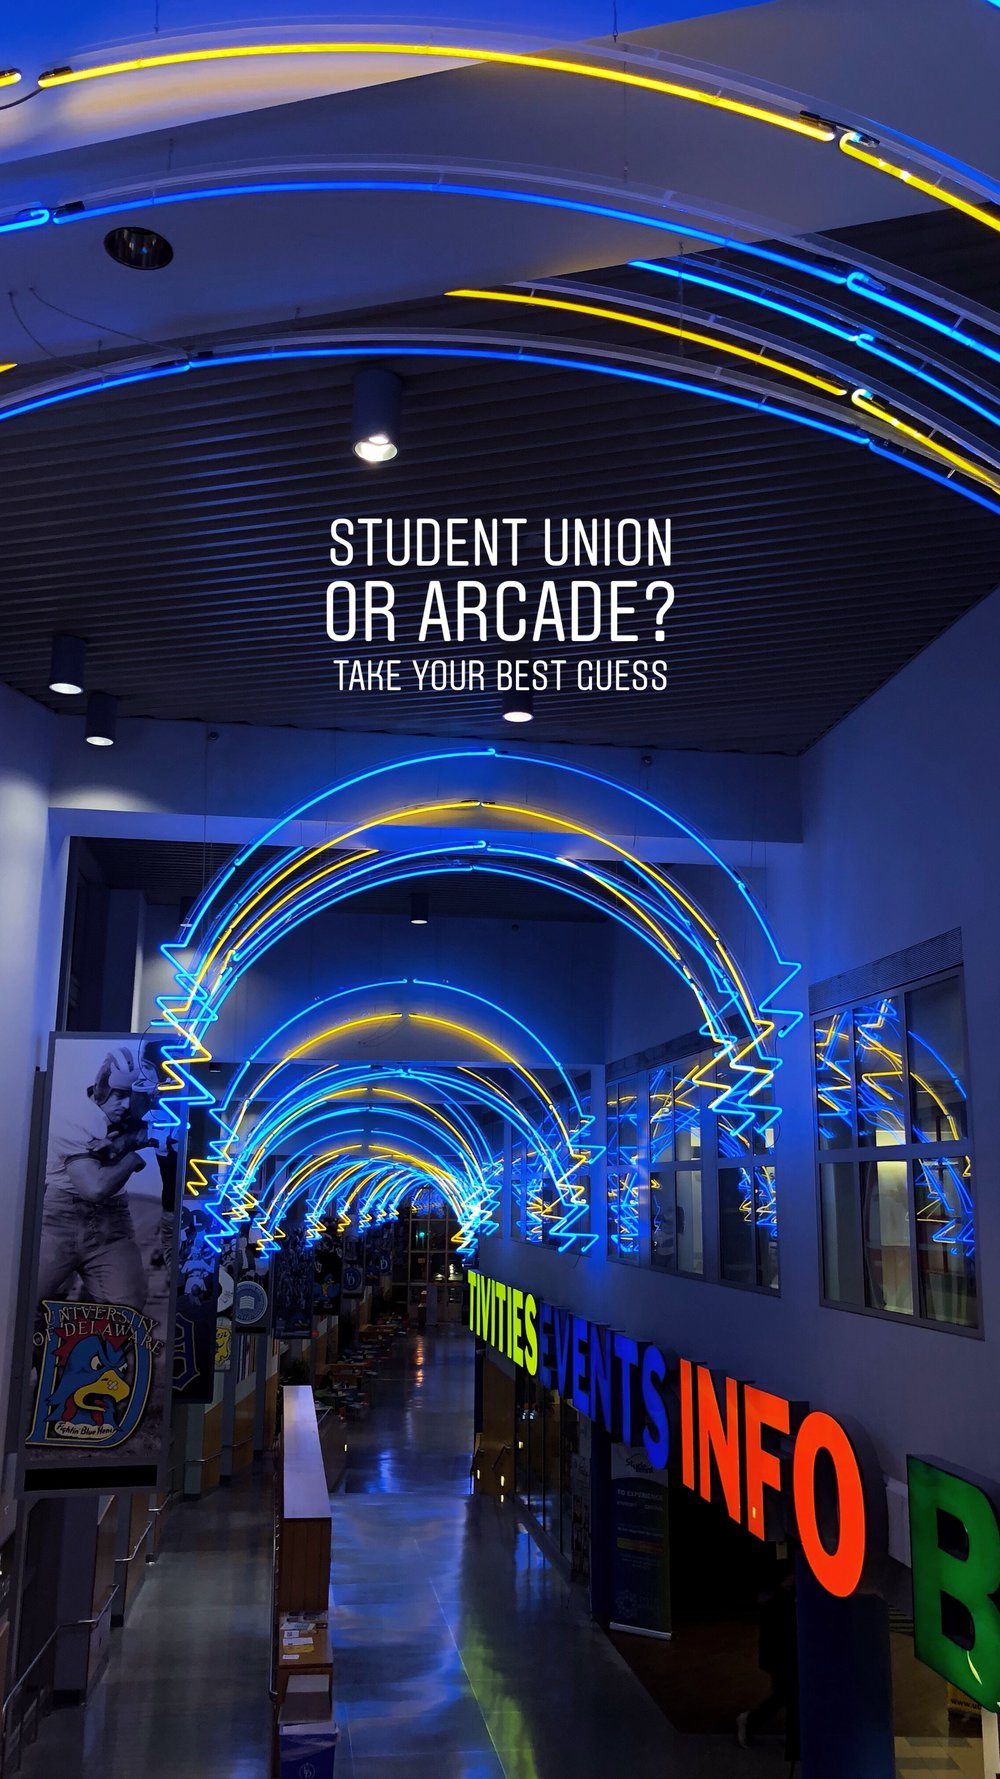 Correct answer: University of Delaware Student Union